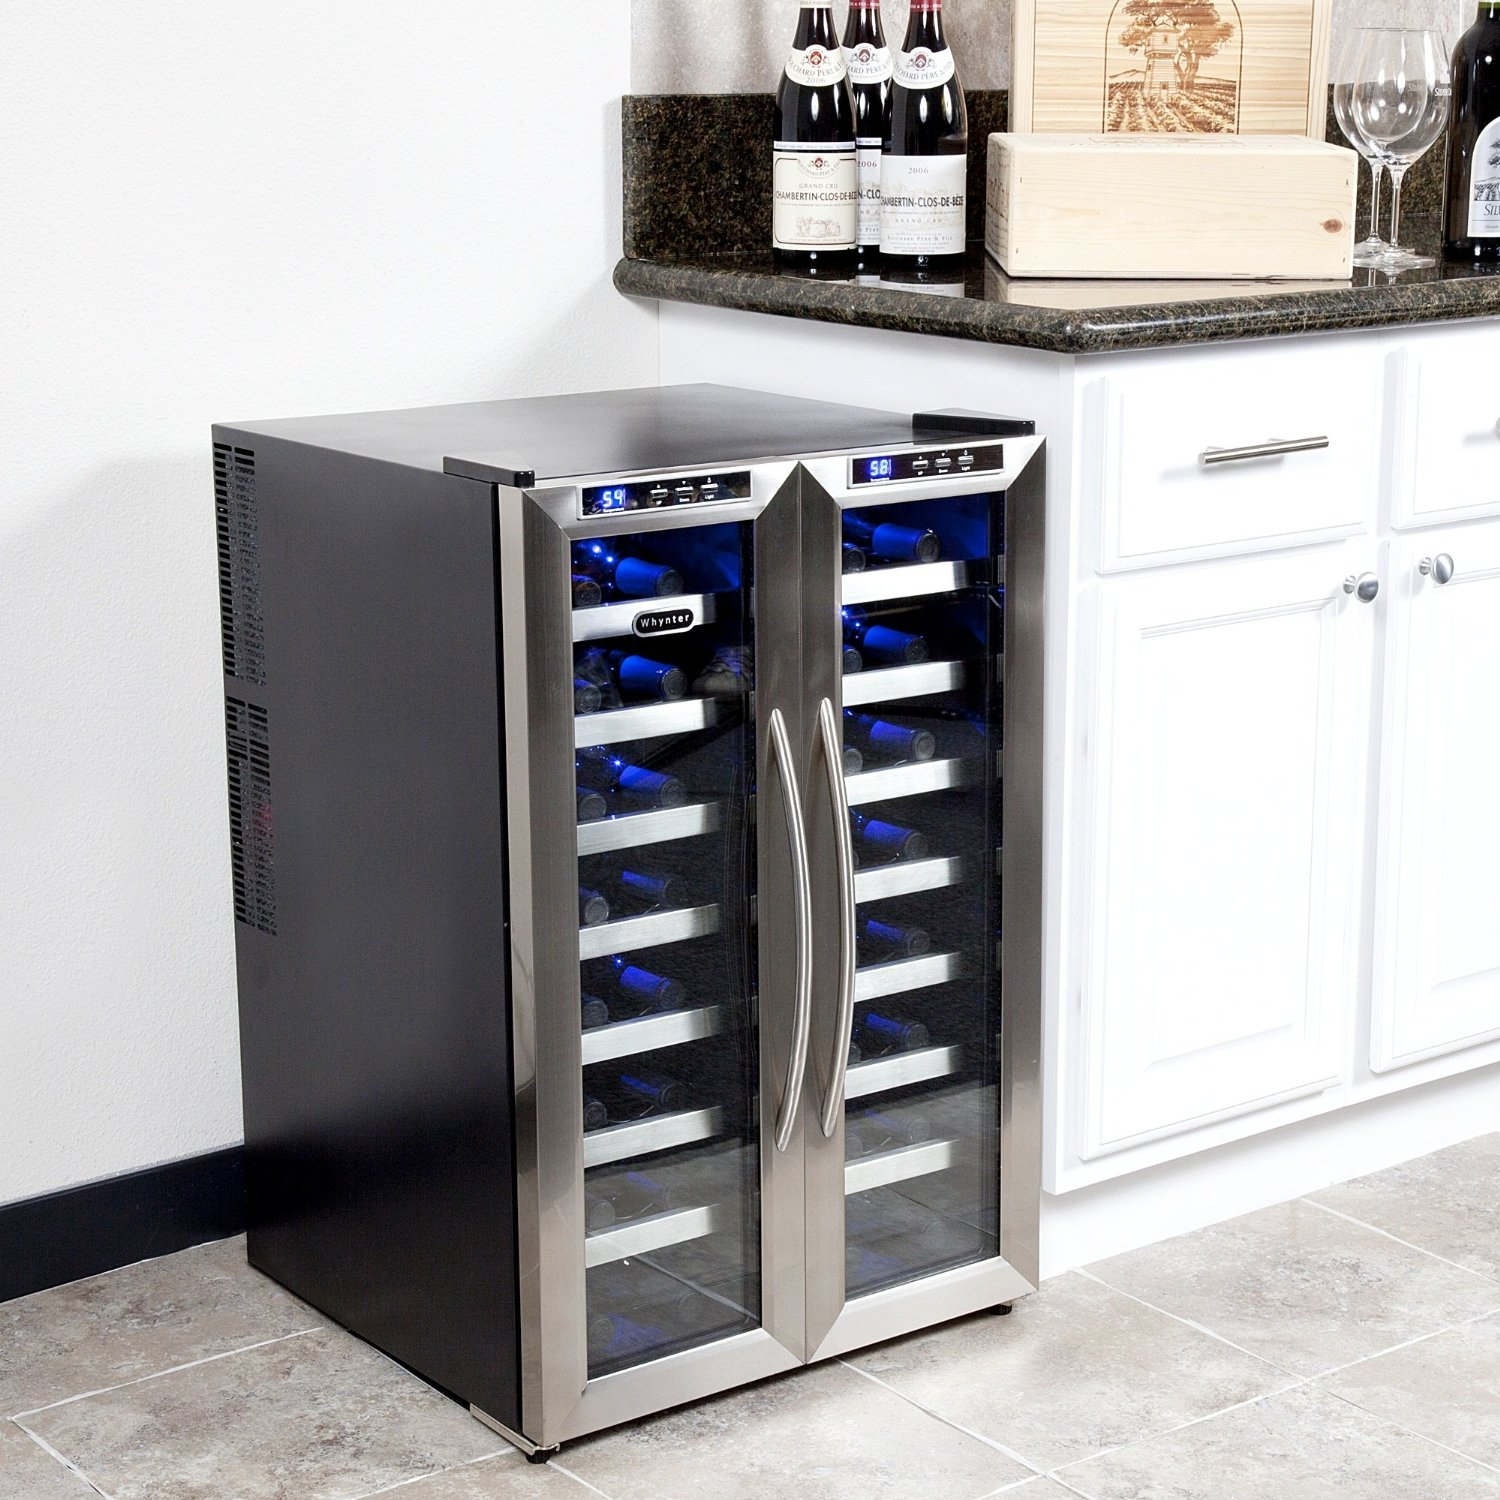 Best Rated Wine Storage Cabinets